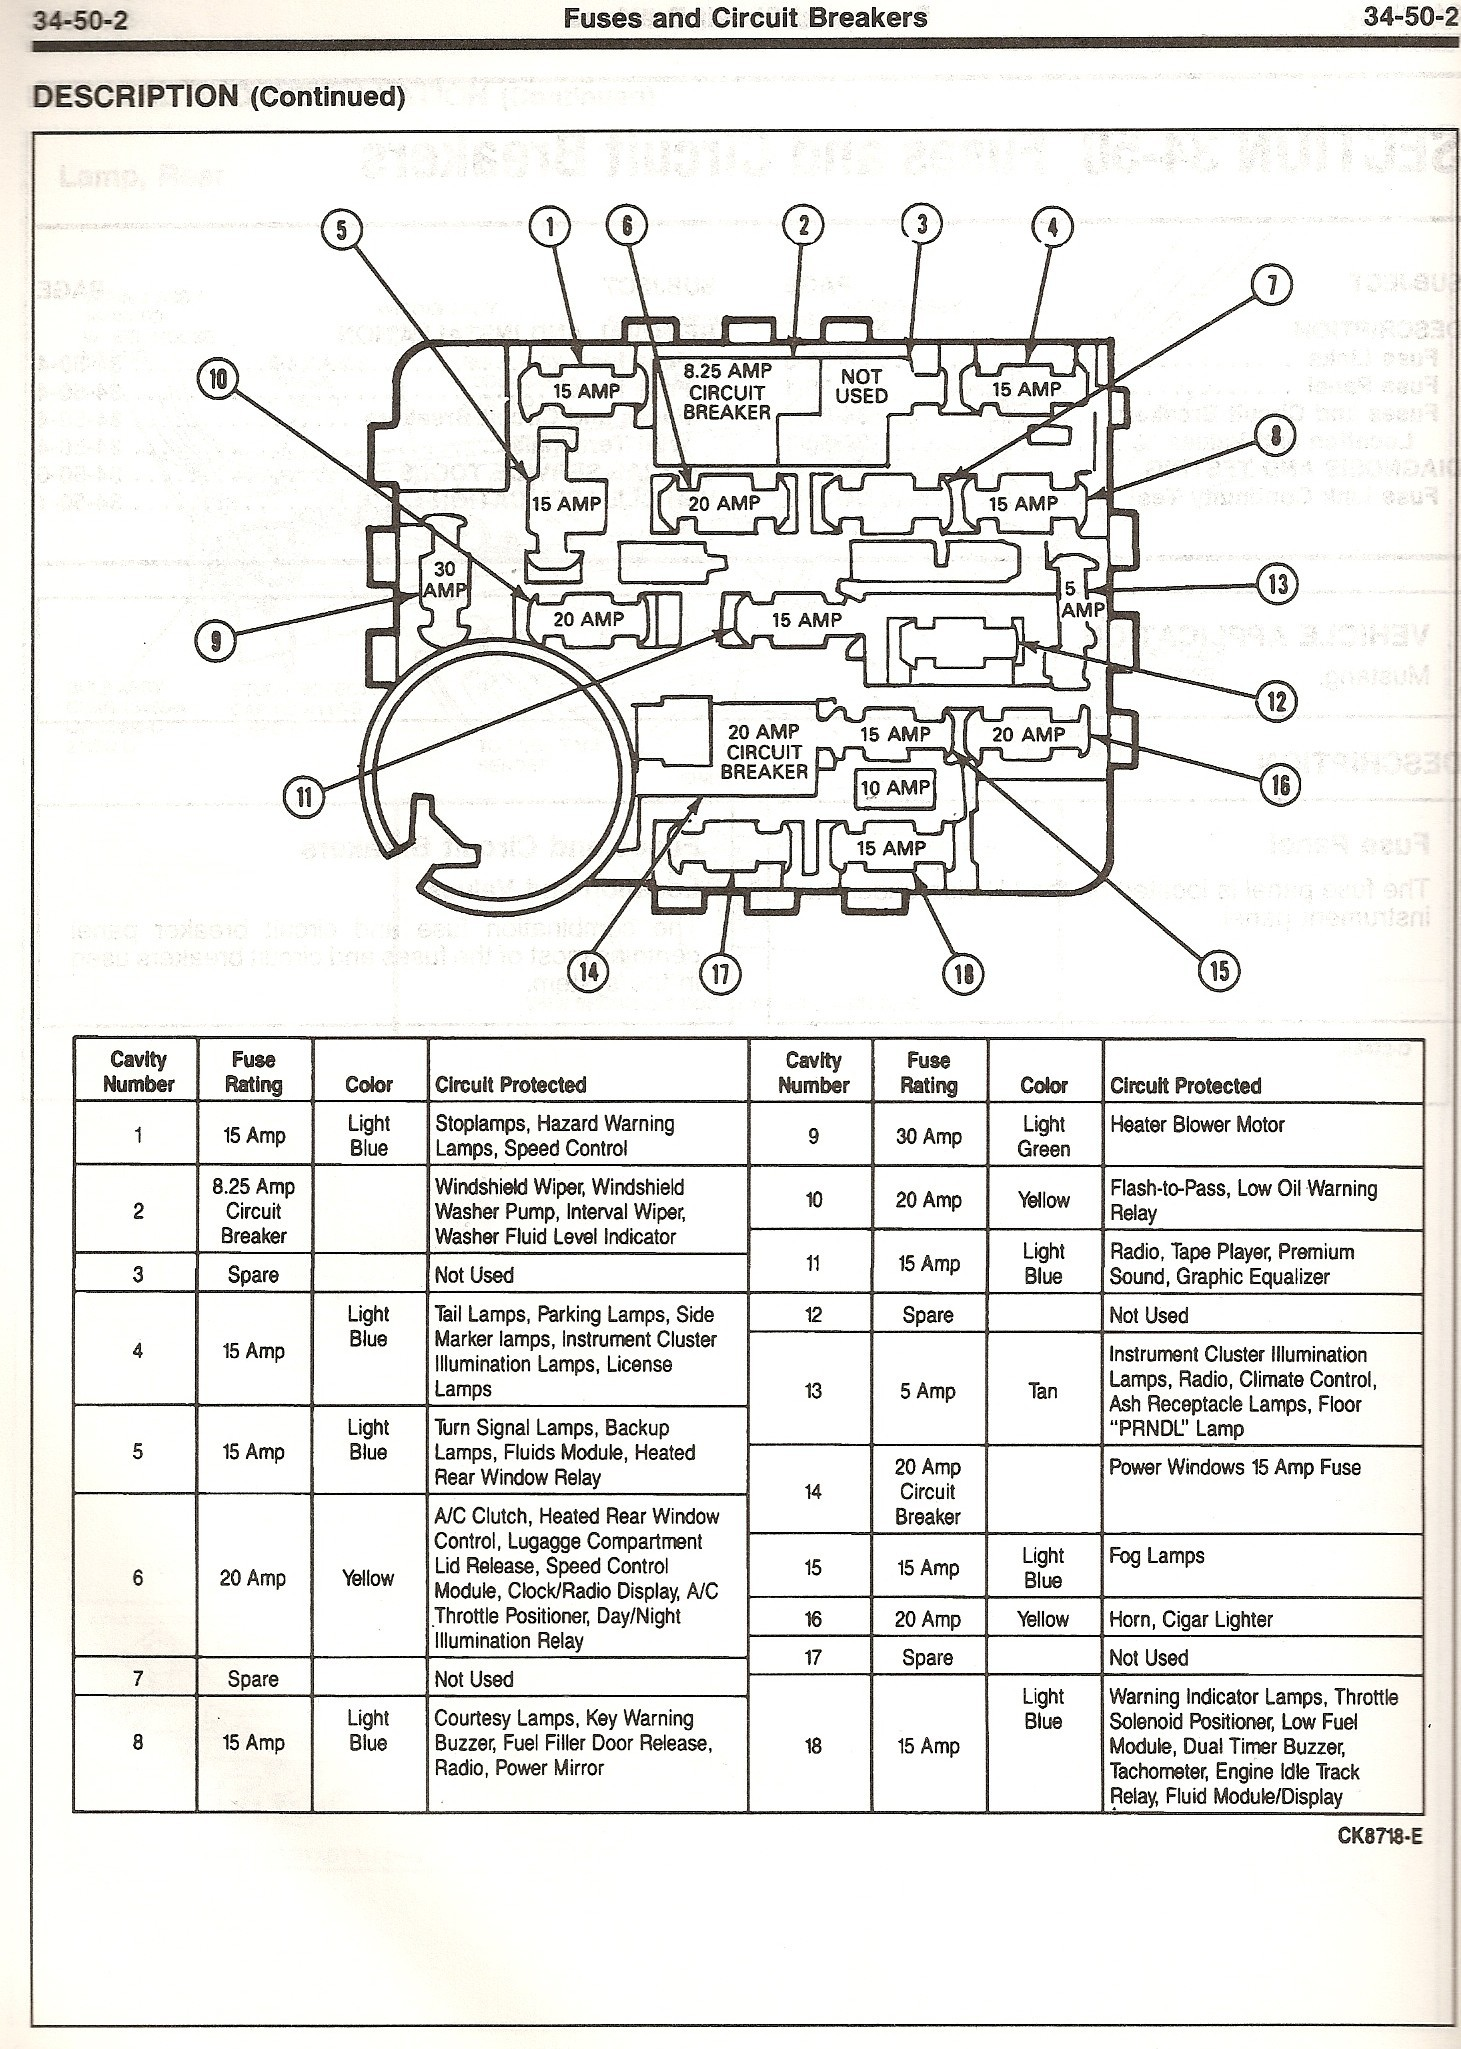 Engine Cooling System Diagram On 1967 Mustang Fuse Box